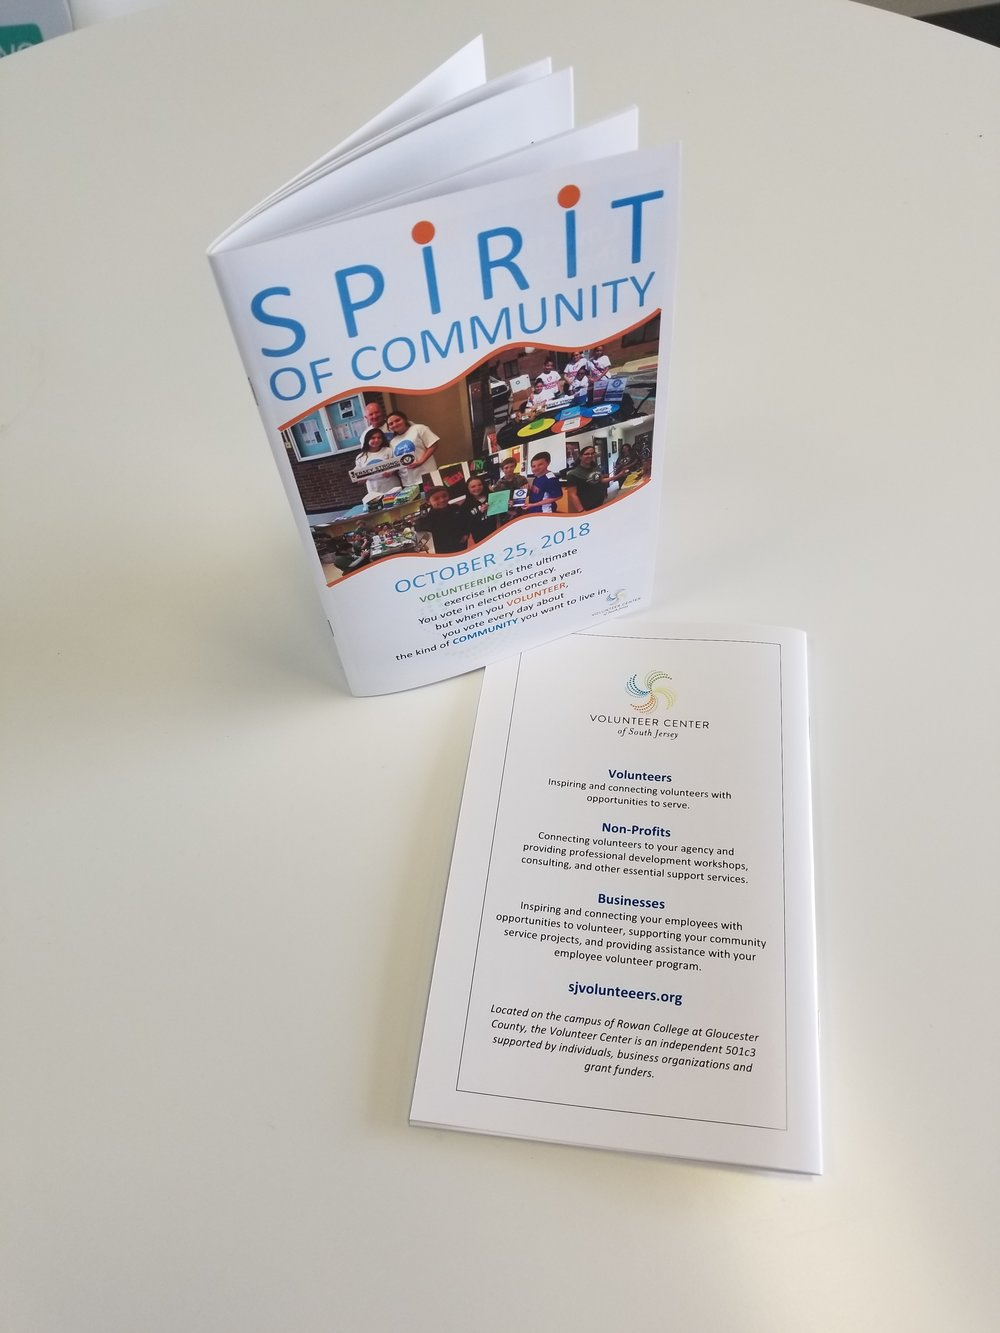 Programs & Booklets - Sponsors love to see their ad & brand displayed in event programs! Looking for help with the design & layout of your next program book? We can help!Featured Client: Volunteer Center of South Jersey